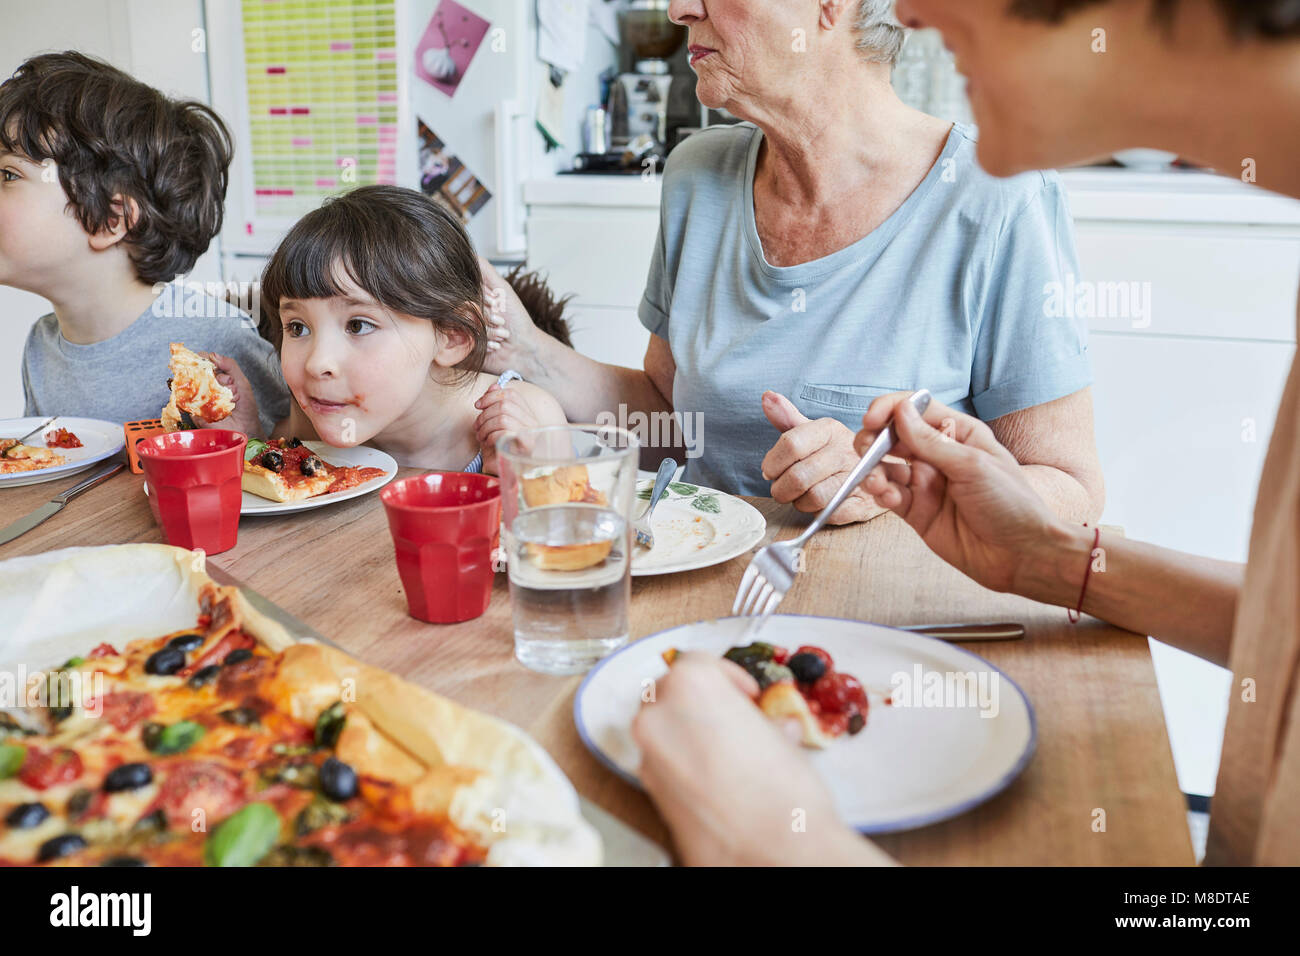 Three generation family sitting at kitchen table eating pizza - Stock Image